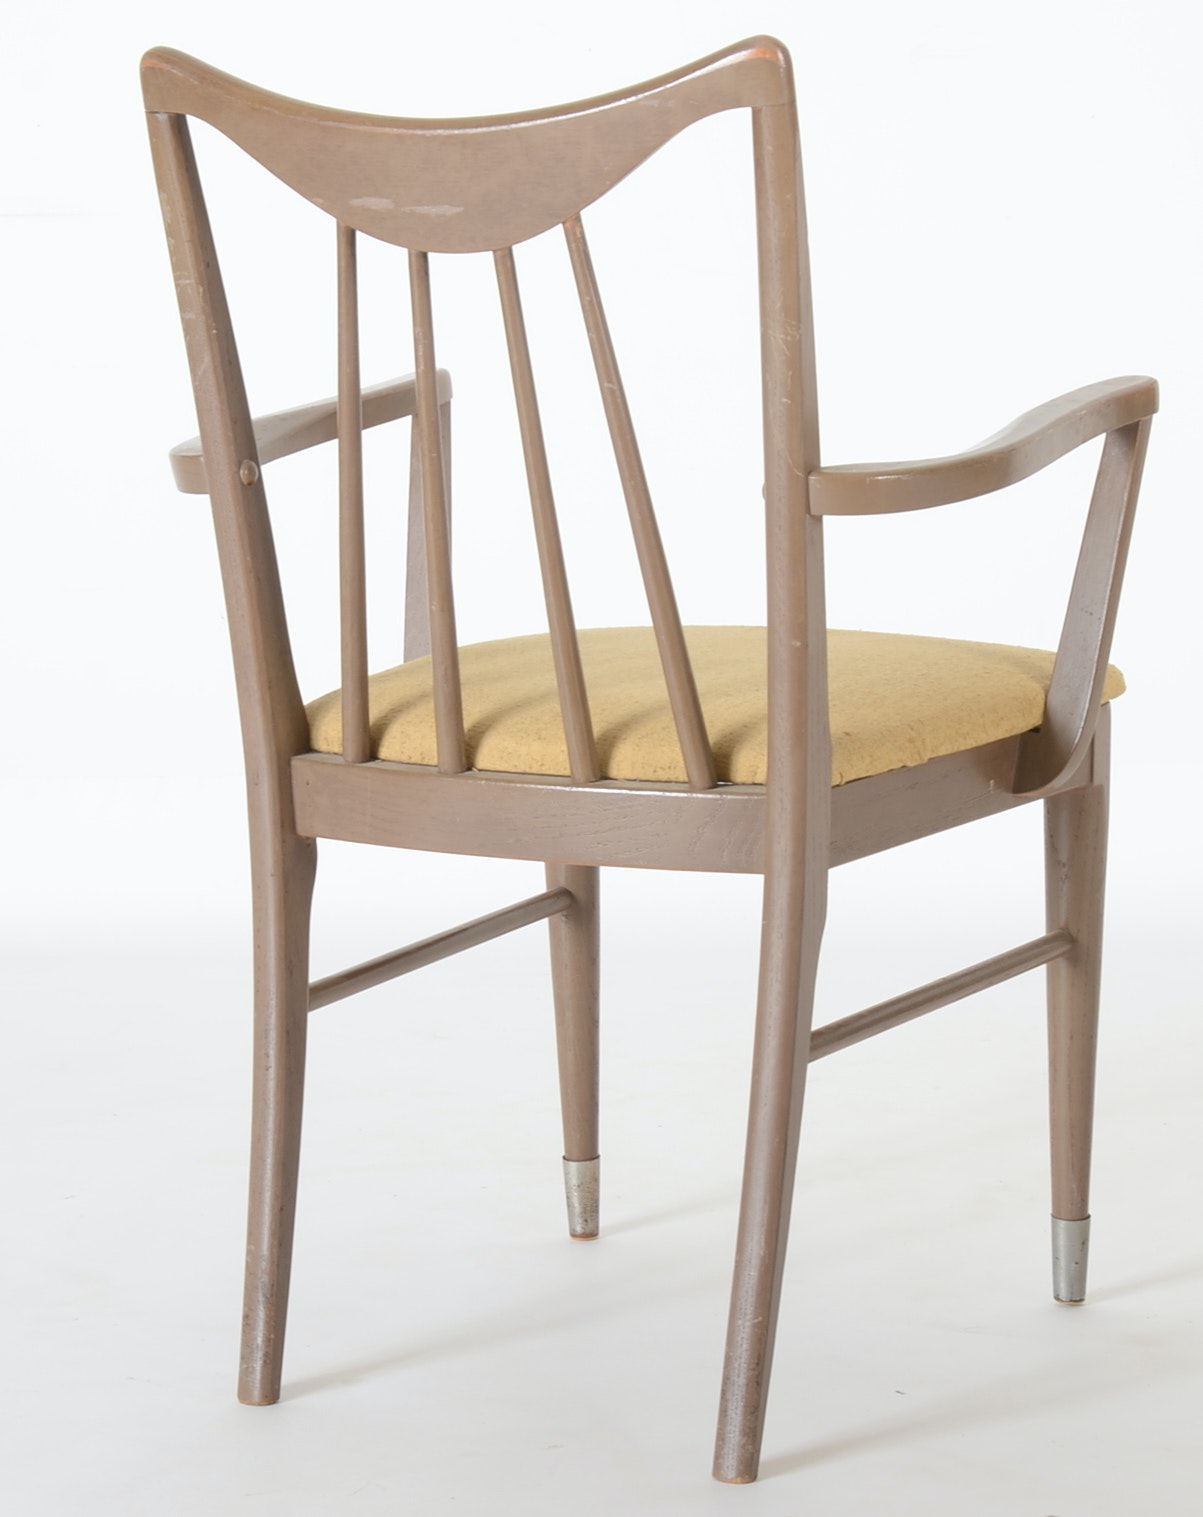 Dining Table Chairs Fit Underneath Images